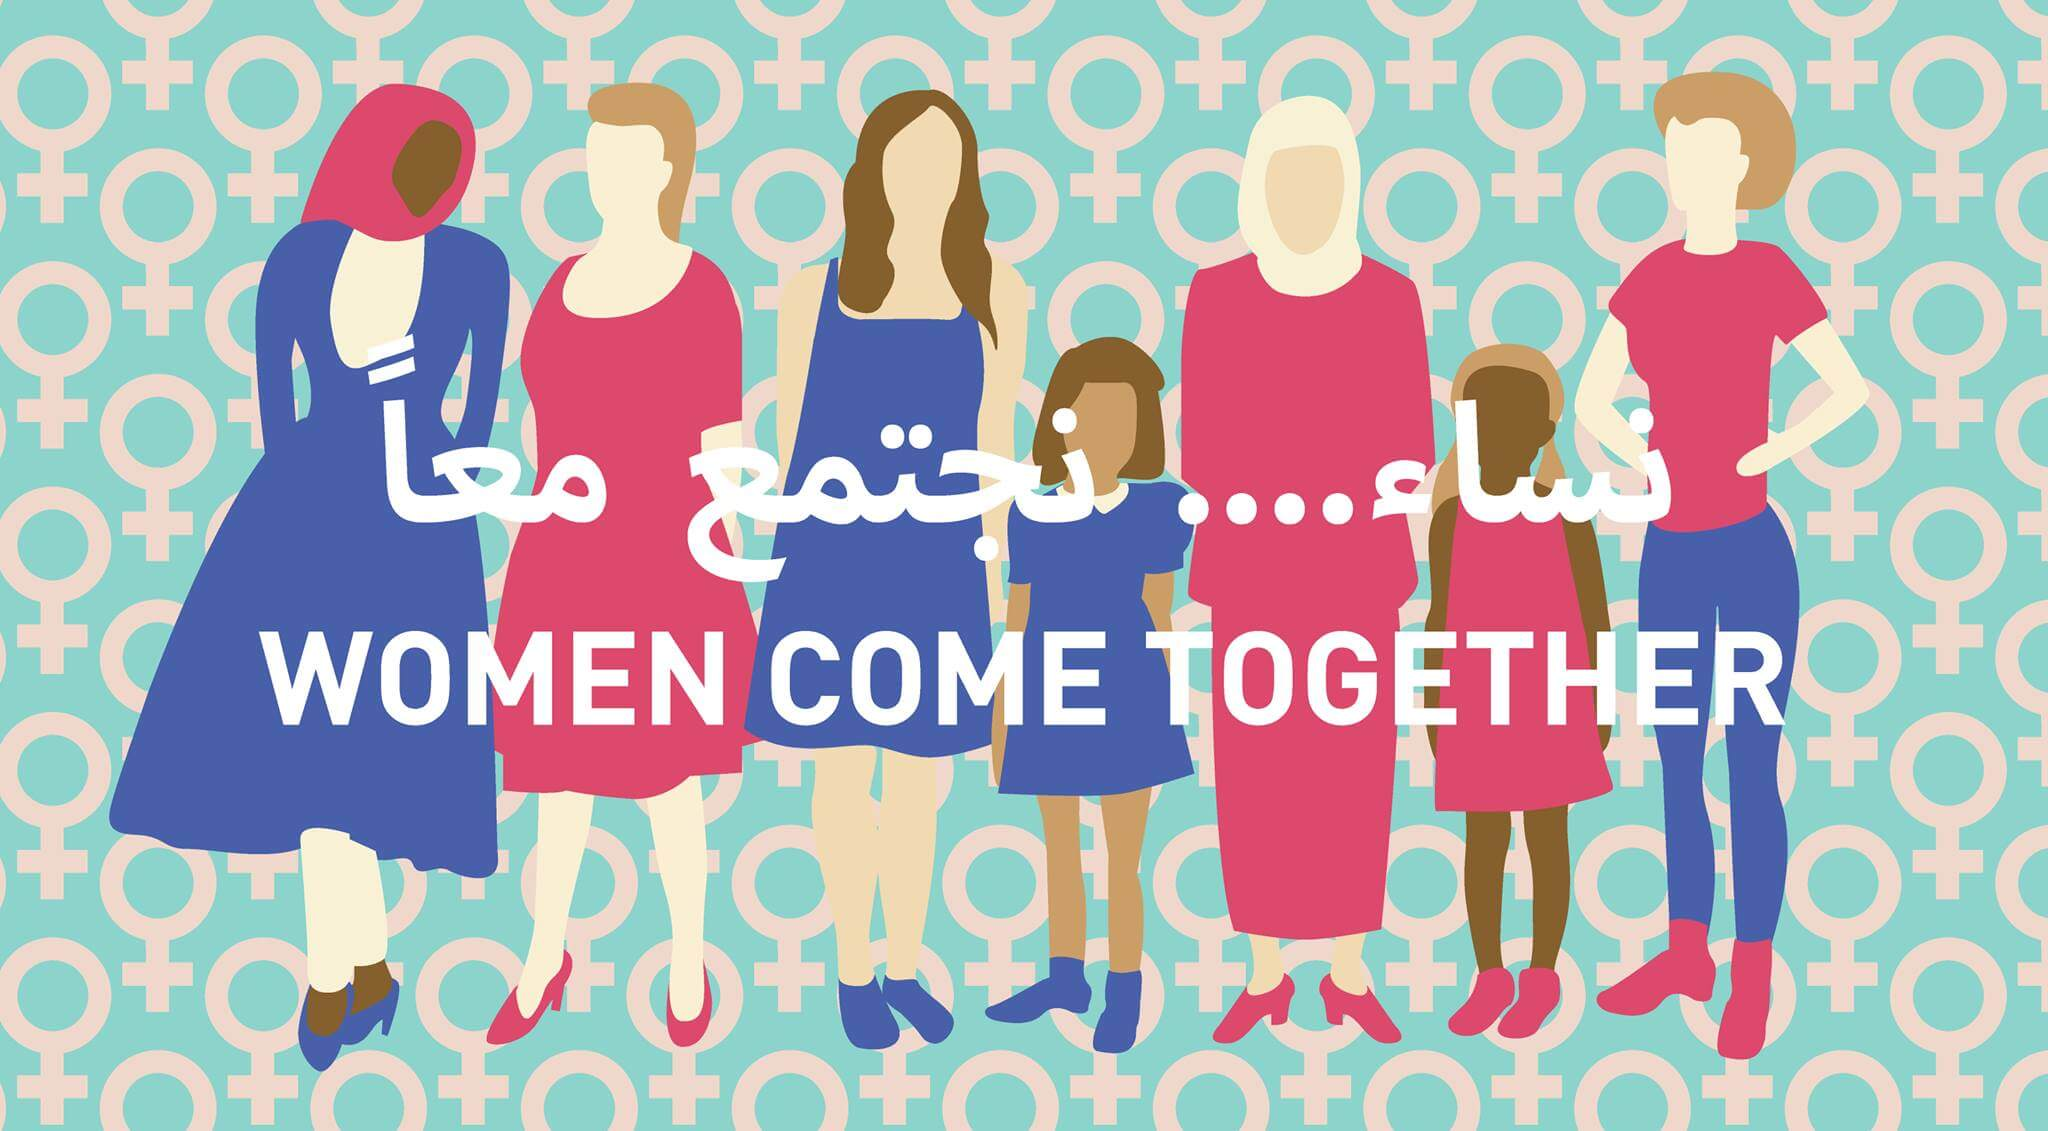 women come together